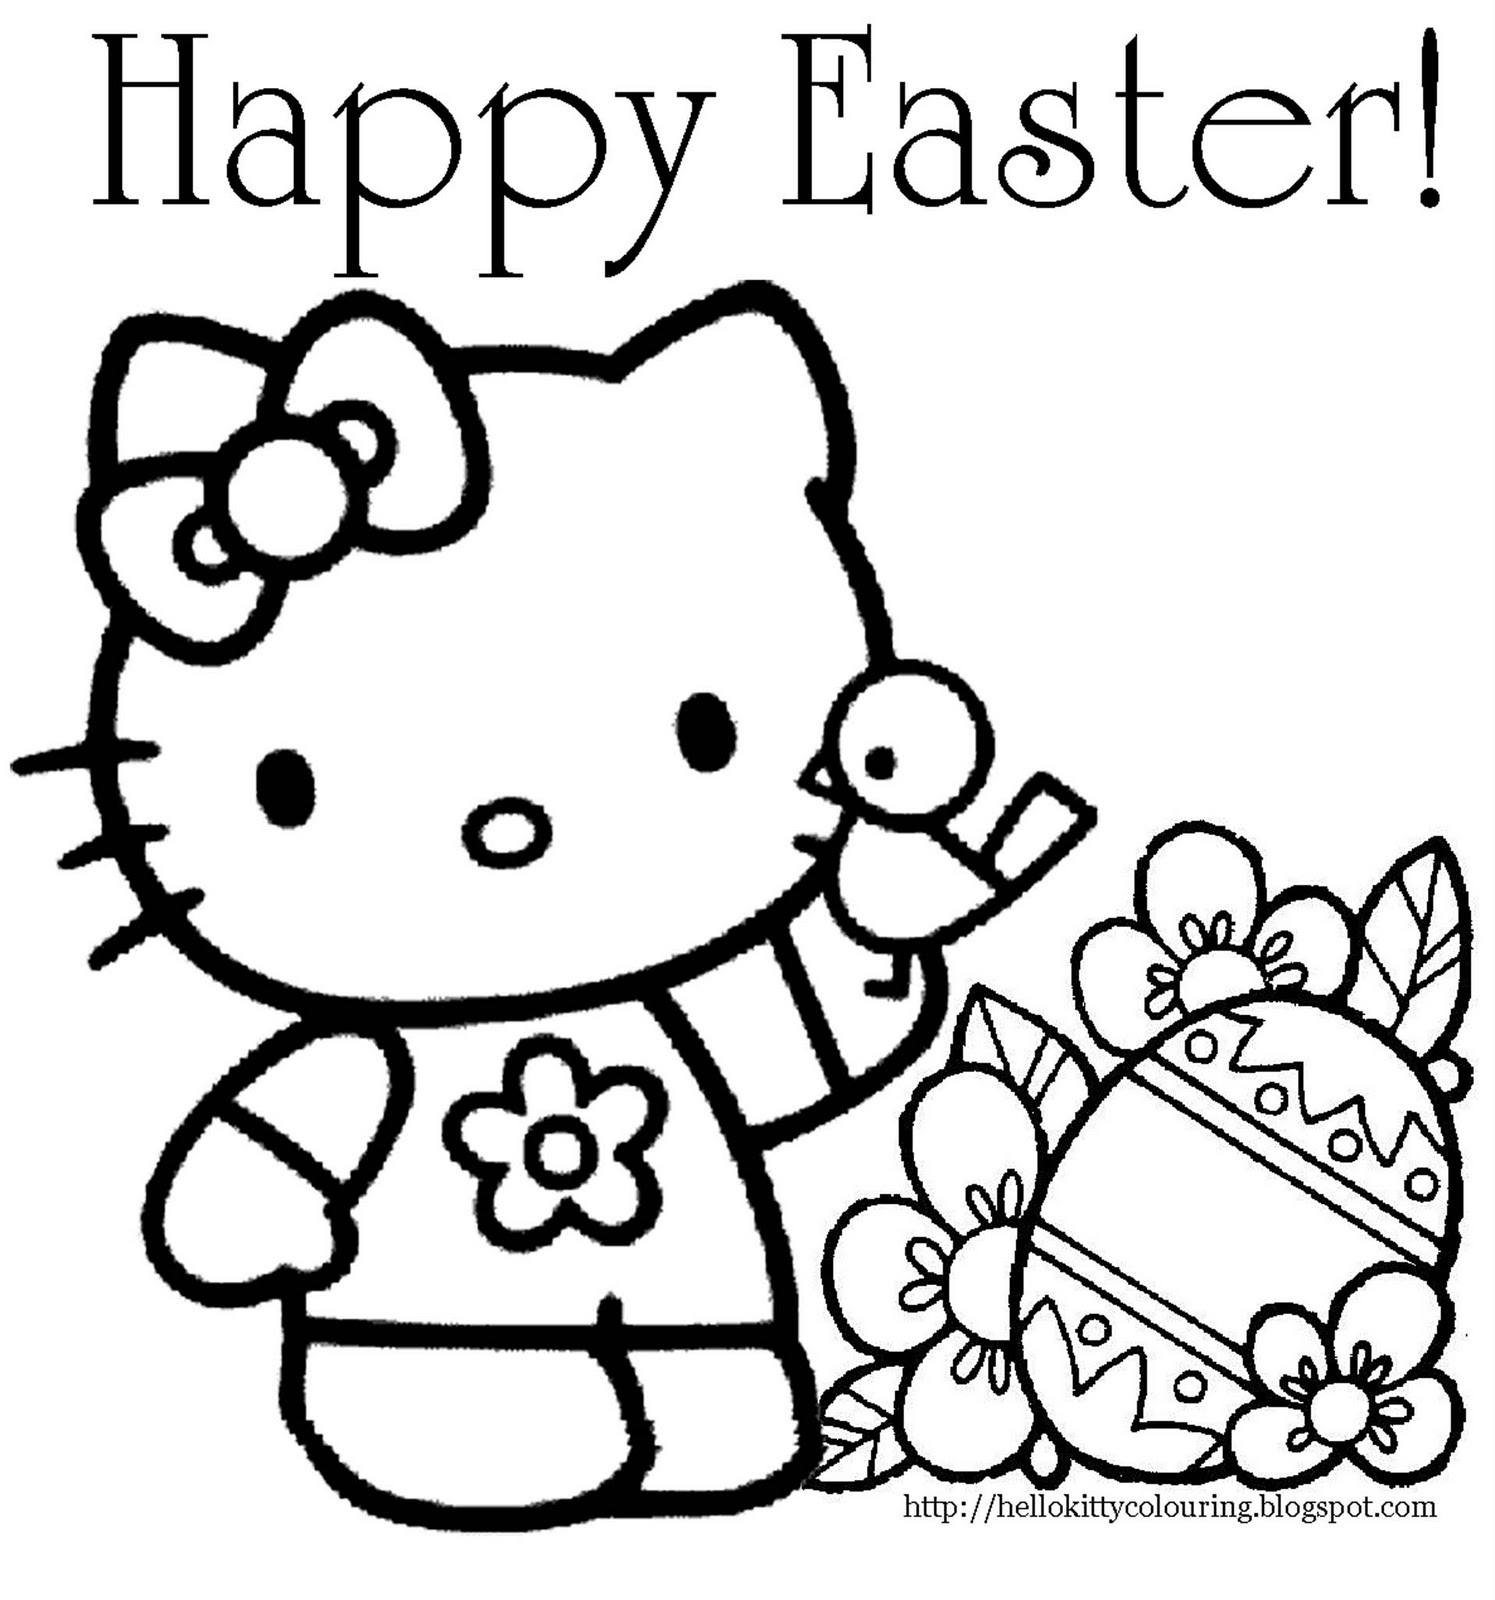 if you would like to print and color free hello kitty coloring pages ...: eastercolouring.blogspot.com